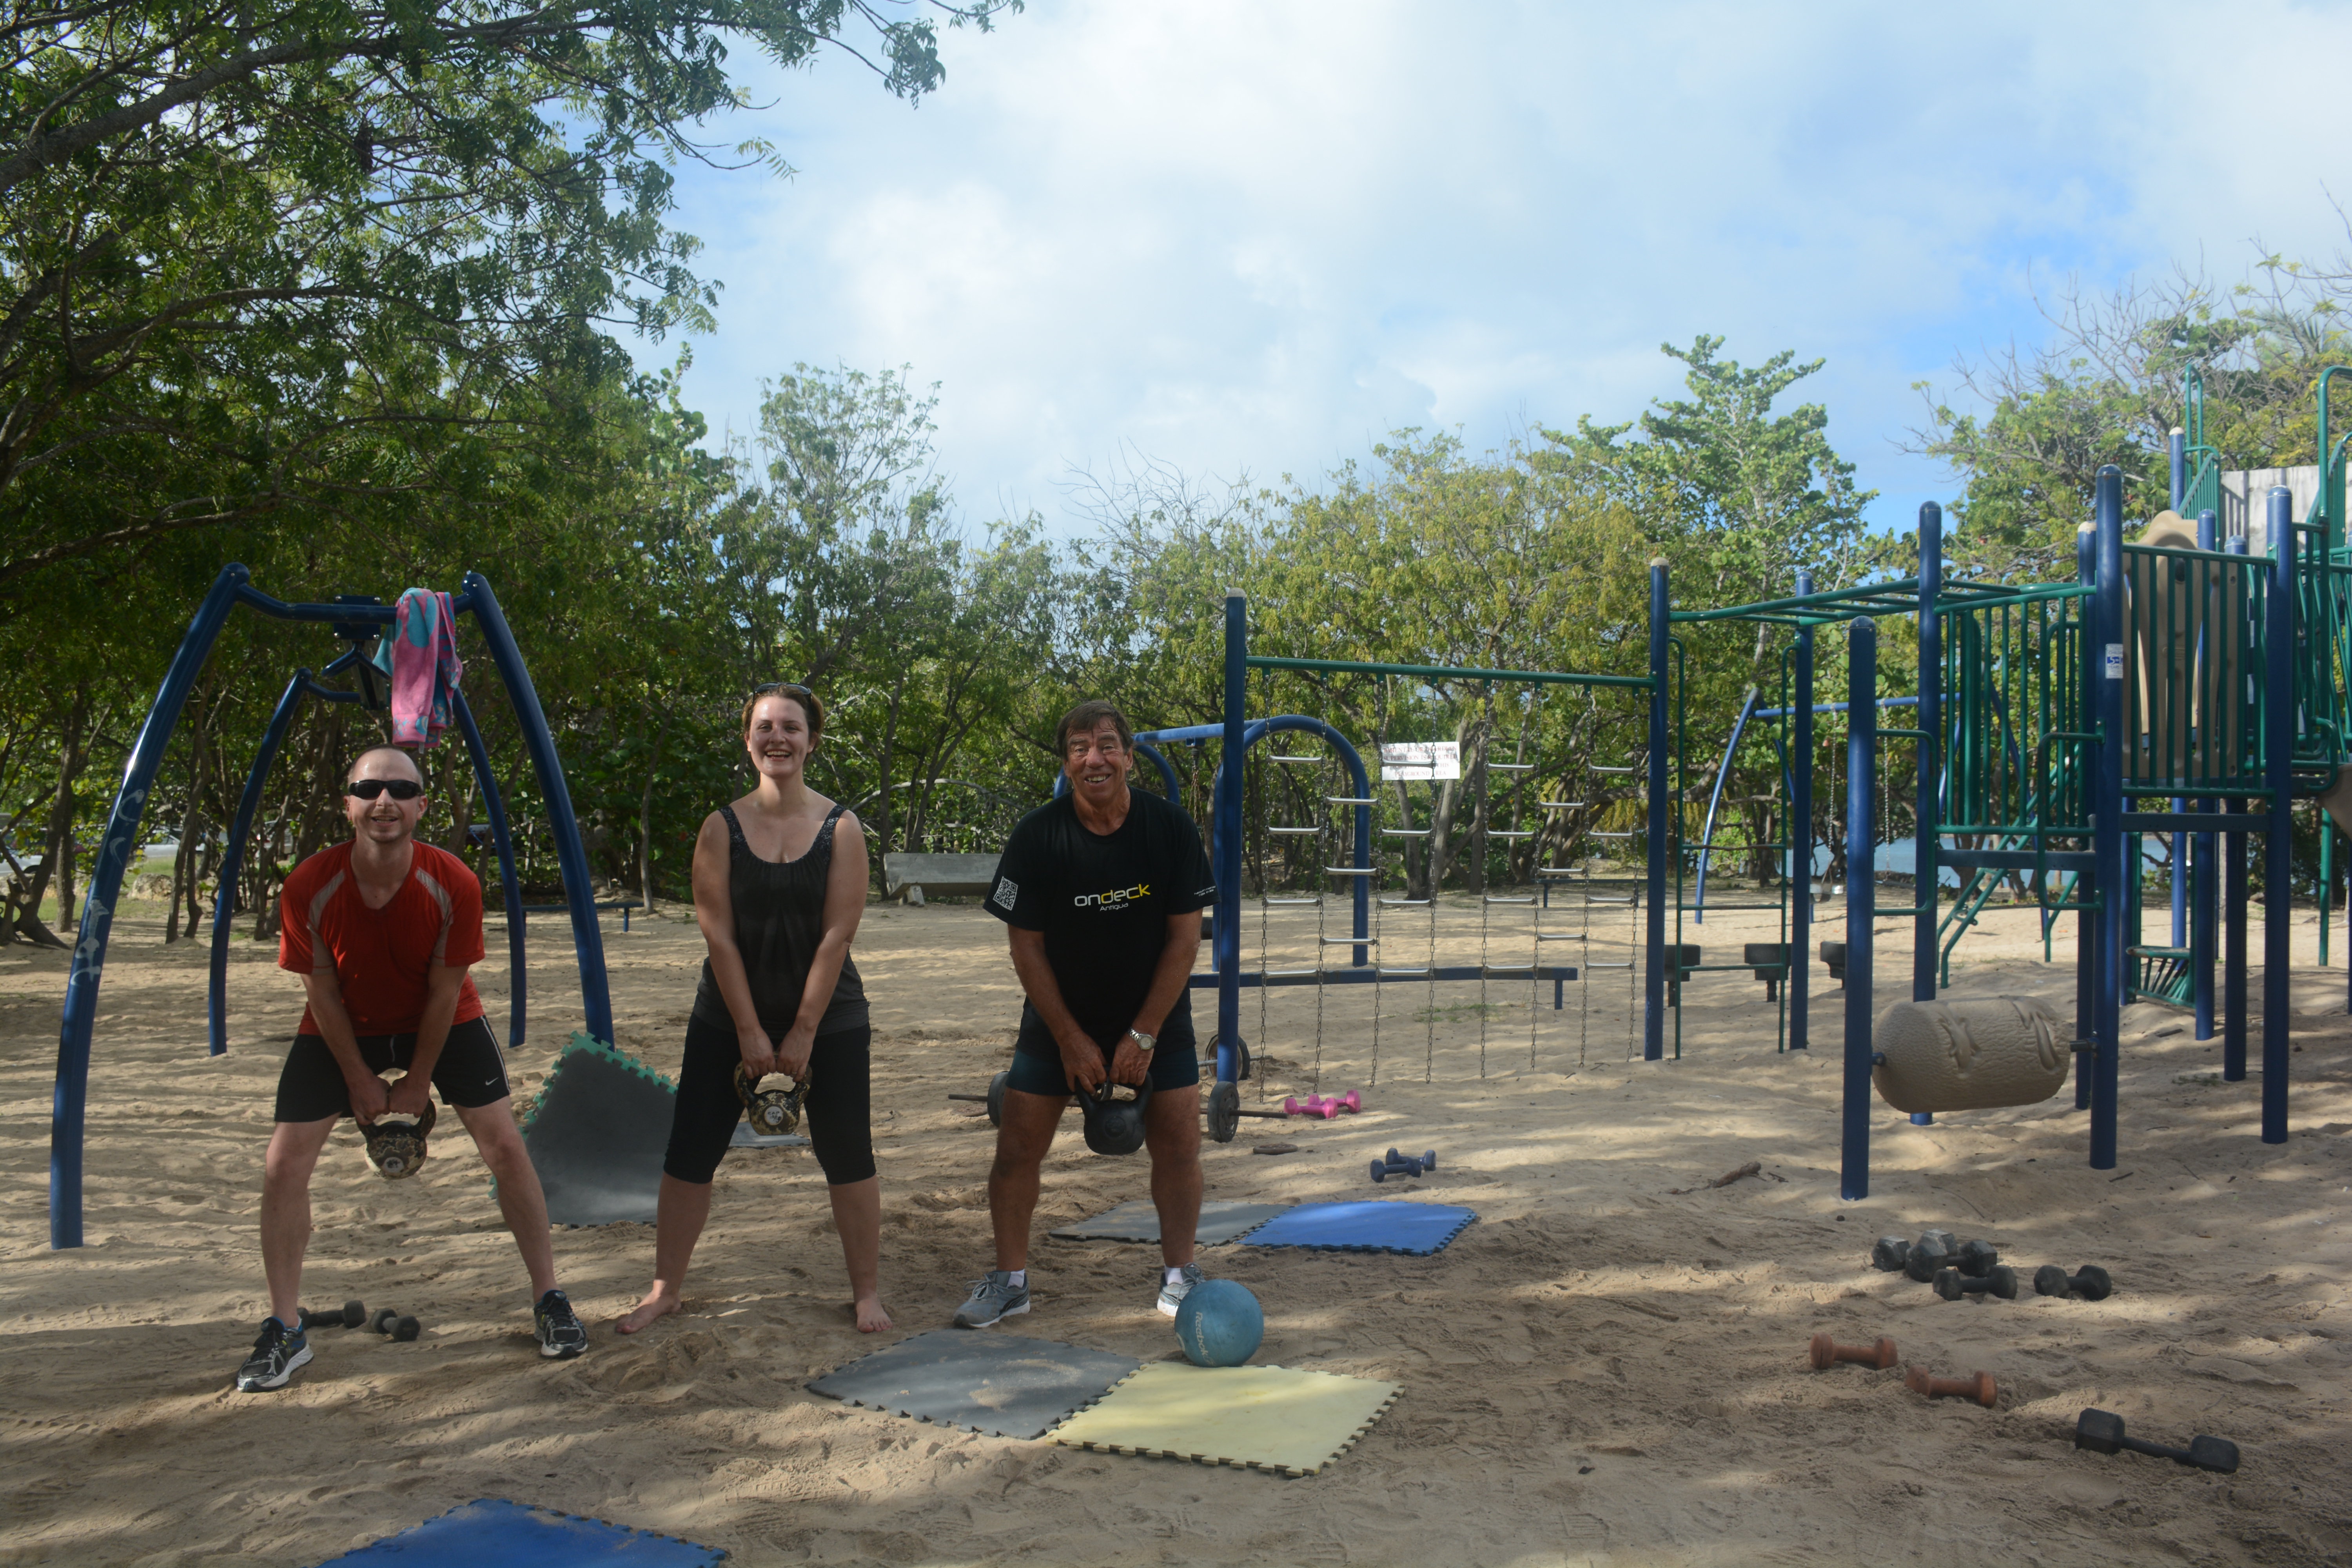 Three people on a beach with kettlebells.